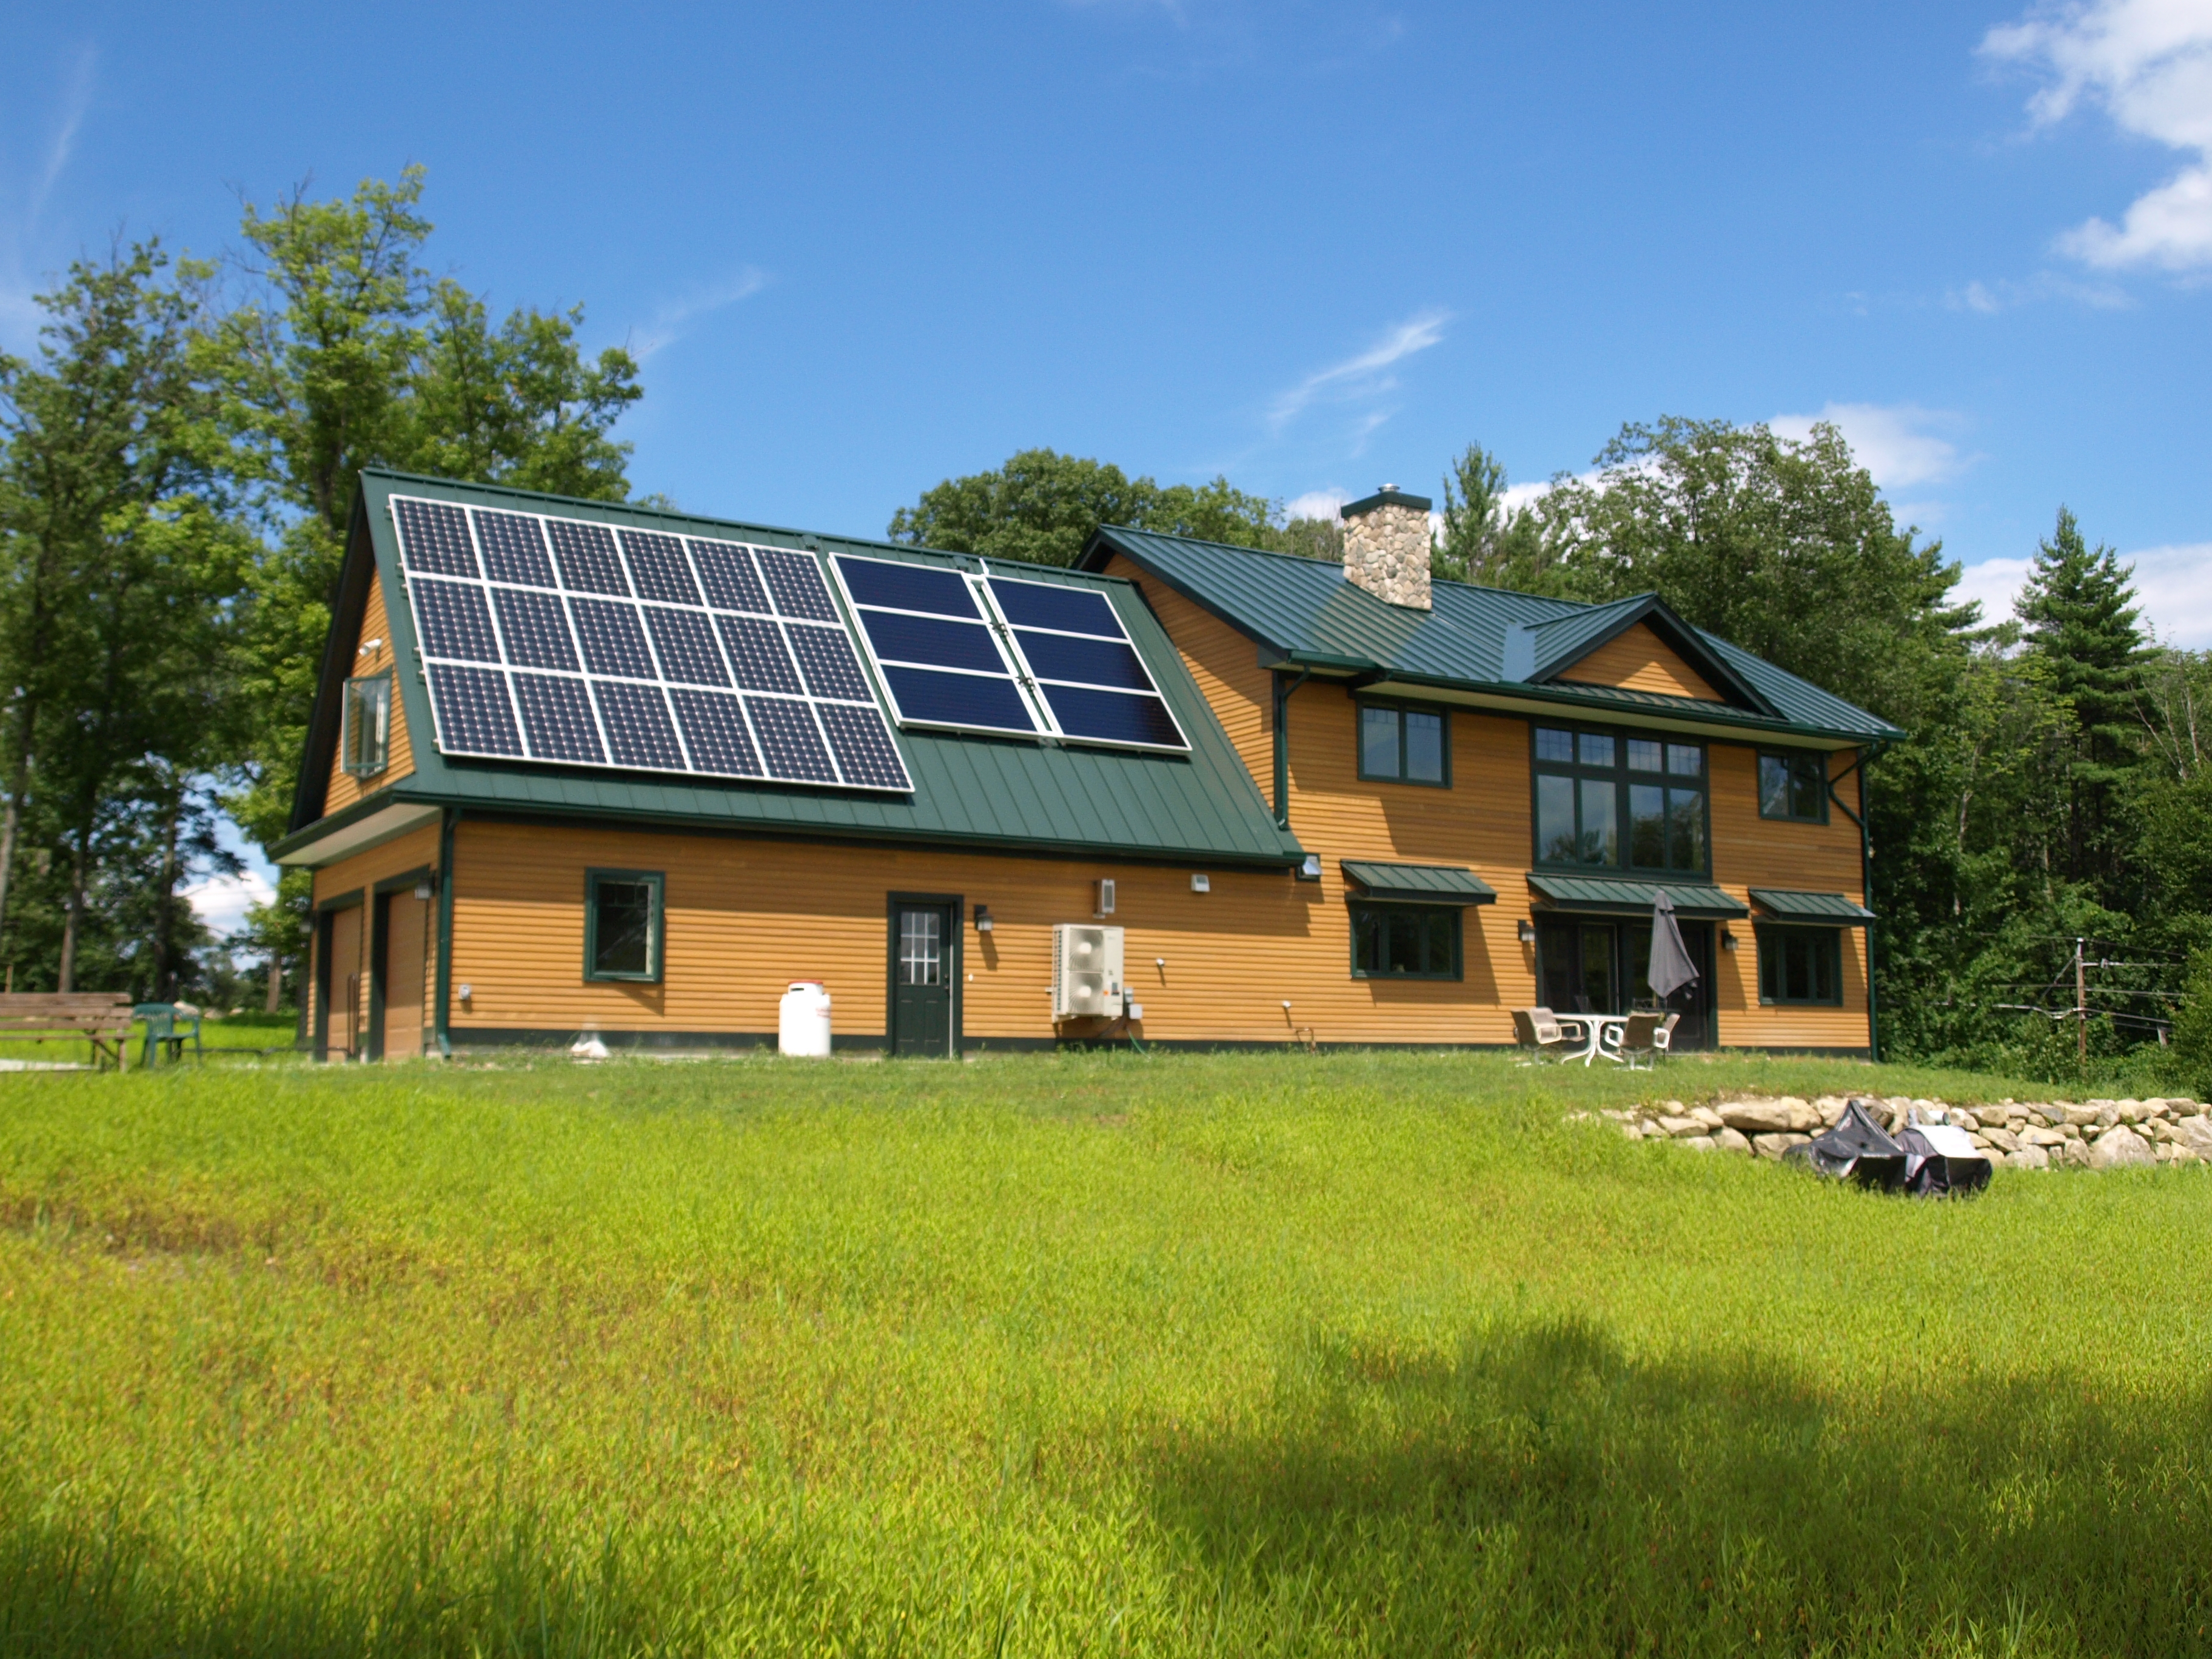 Net zero energy home in nh ridgeview construction for New home construction nh